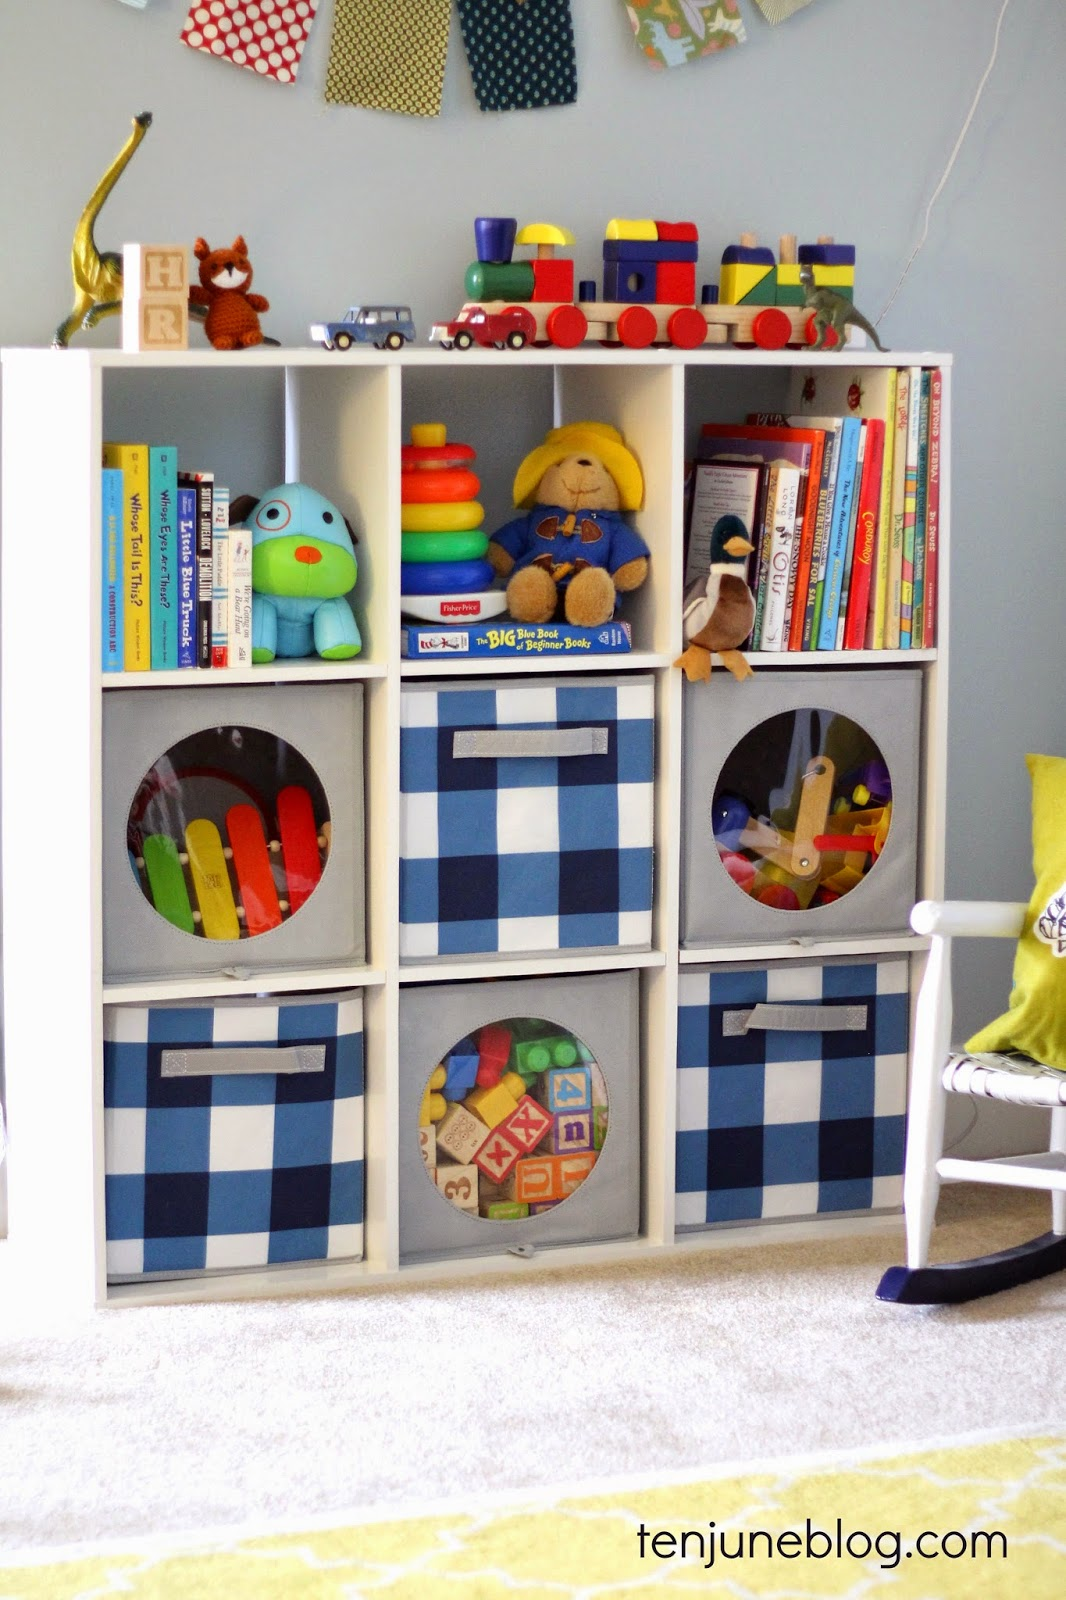 Kids Room/Play Room Toy Storage Ideas